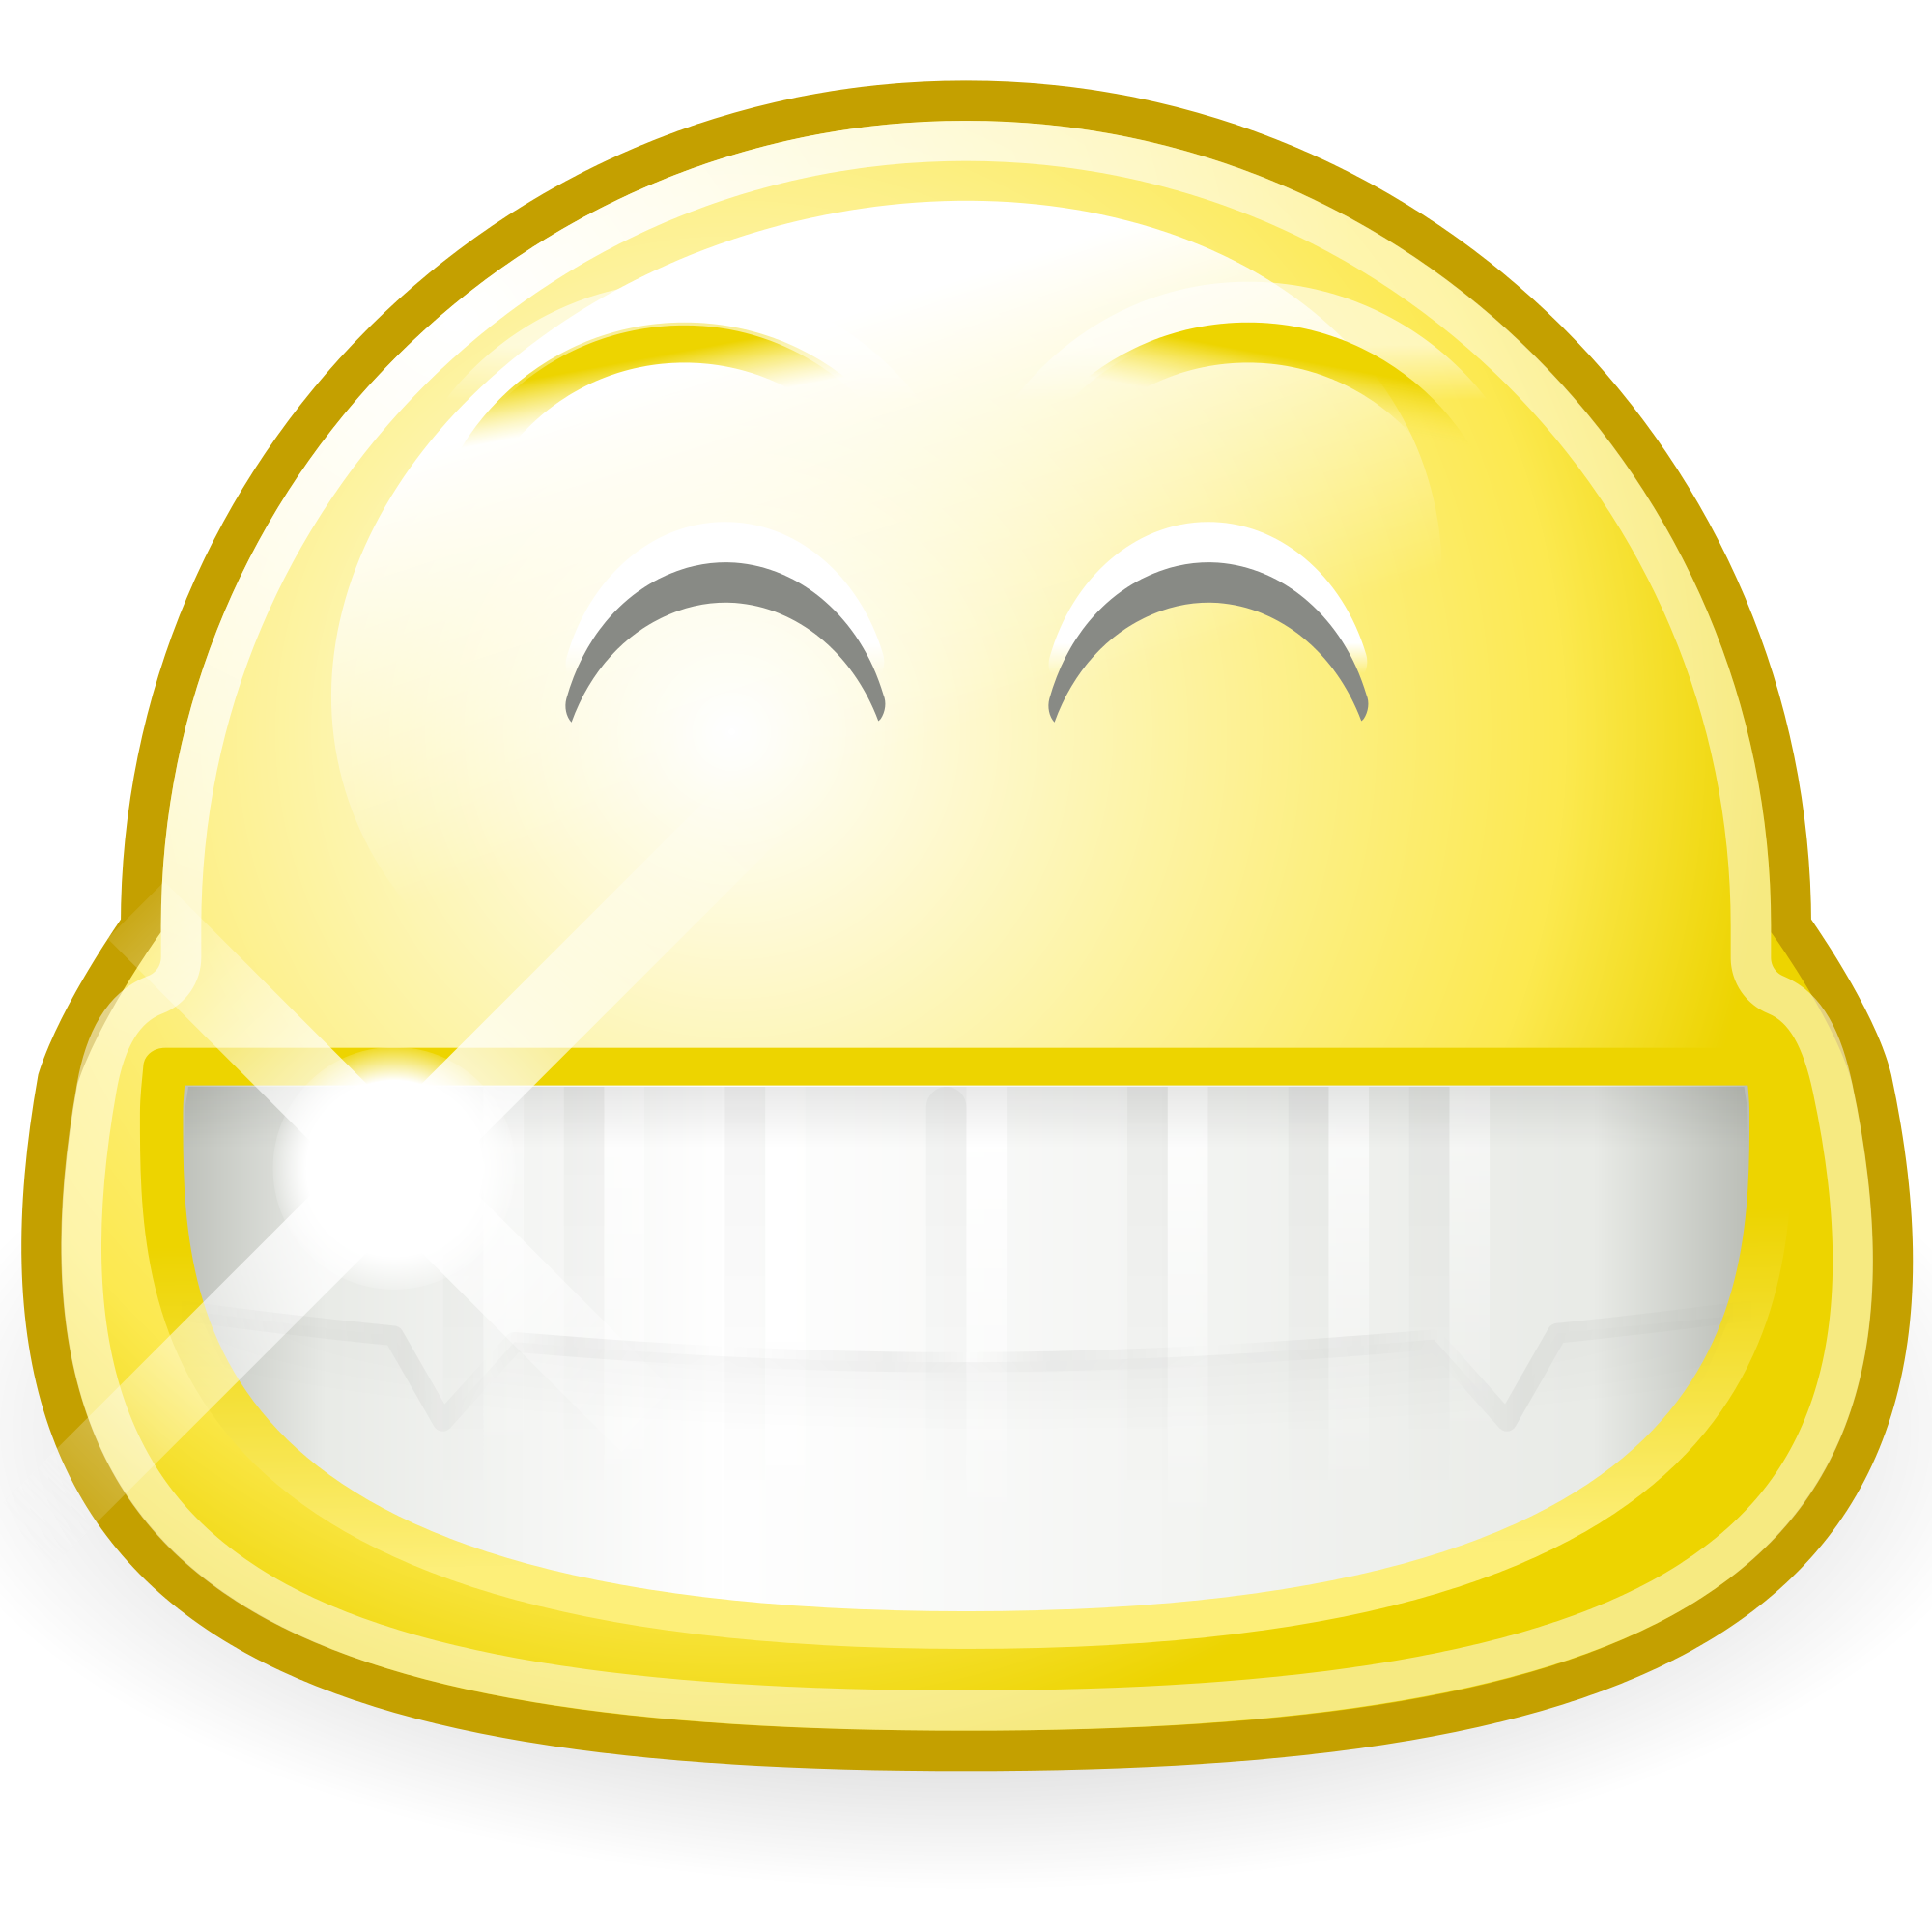 File:Gnome-face-smile-big.svg - Wikimedia Commons